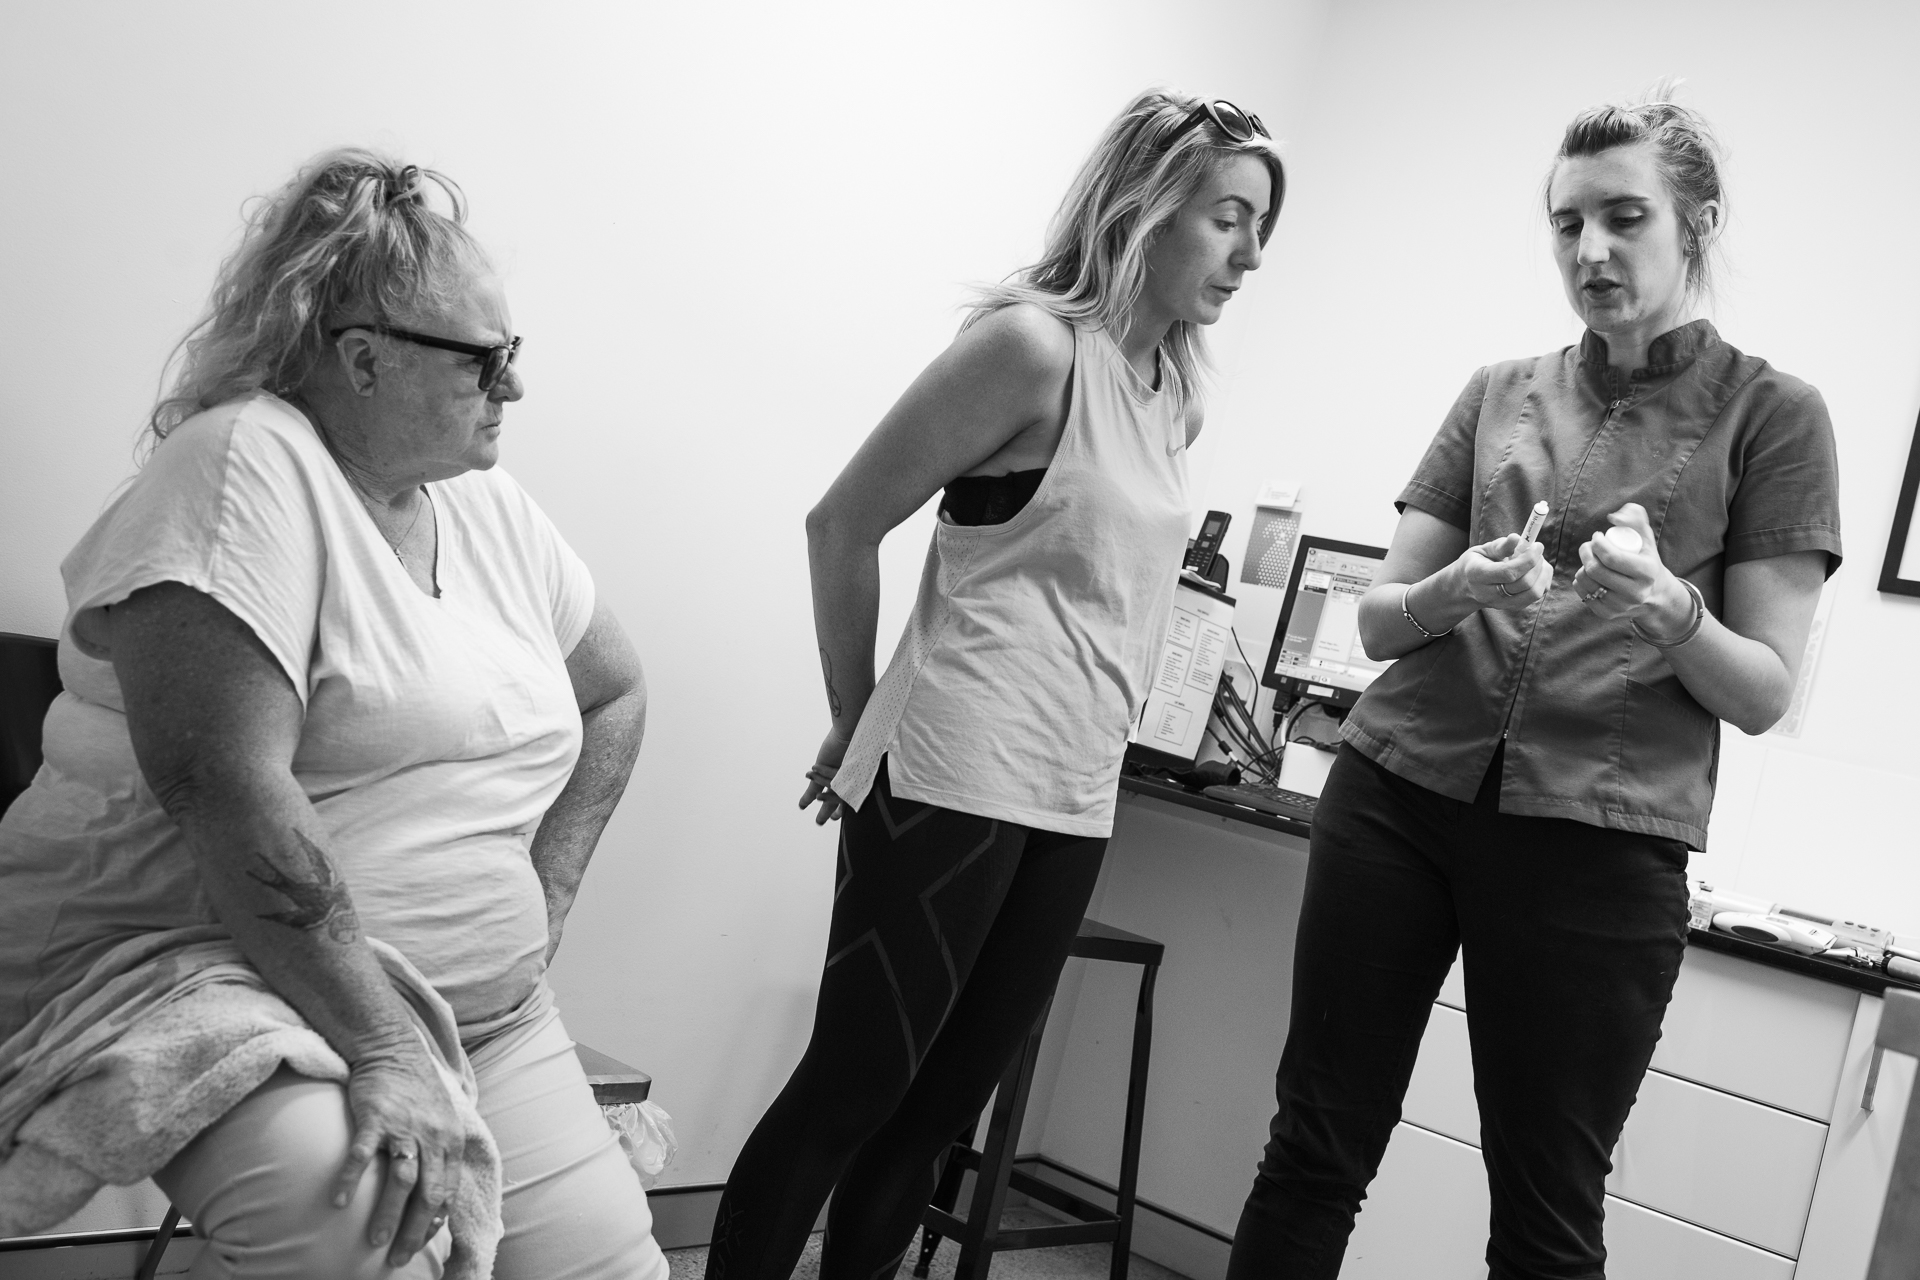 Amber Waters ( middle ) and her mother, Neridah, listen as Dr Louise Grey explains medications and doses to be given to Turbo, Amber's dog. Turbo was in earlier during the week for an invasive surgery to repair a significant spiral fracture to his rear-right tibia.  17 March, 2018.